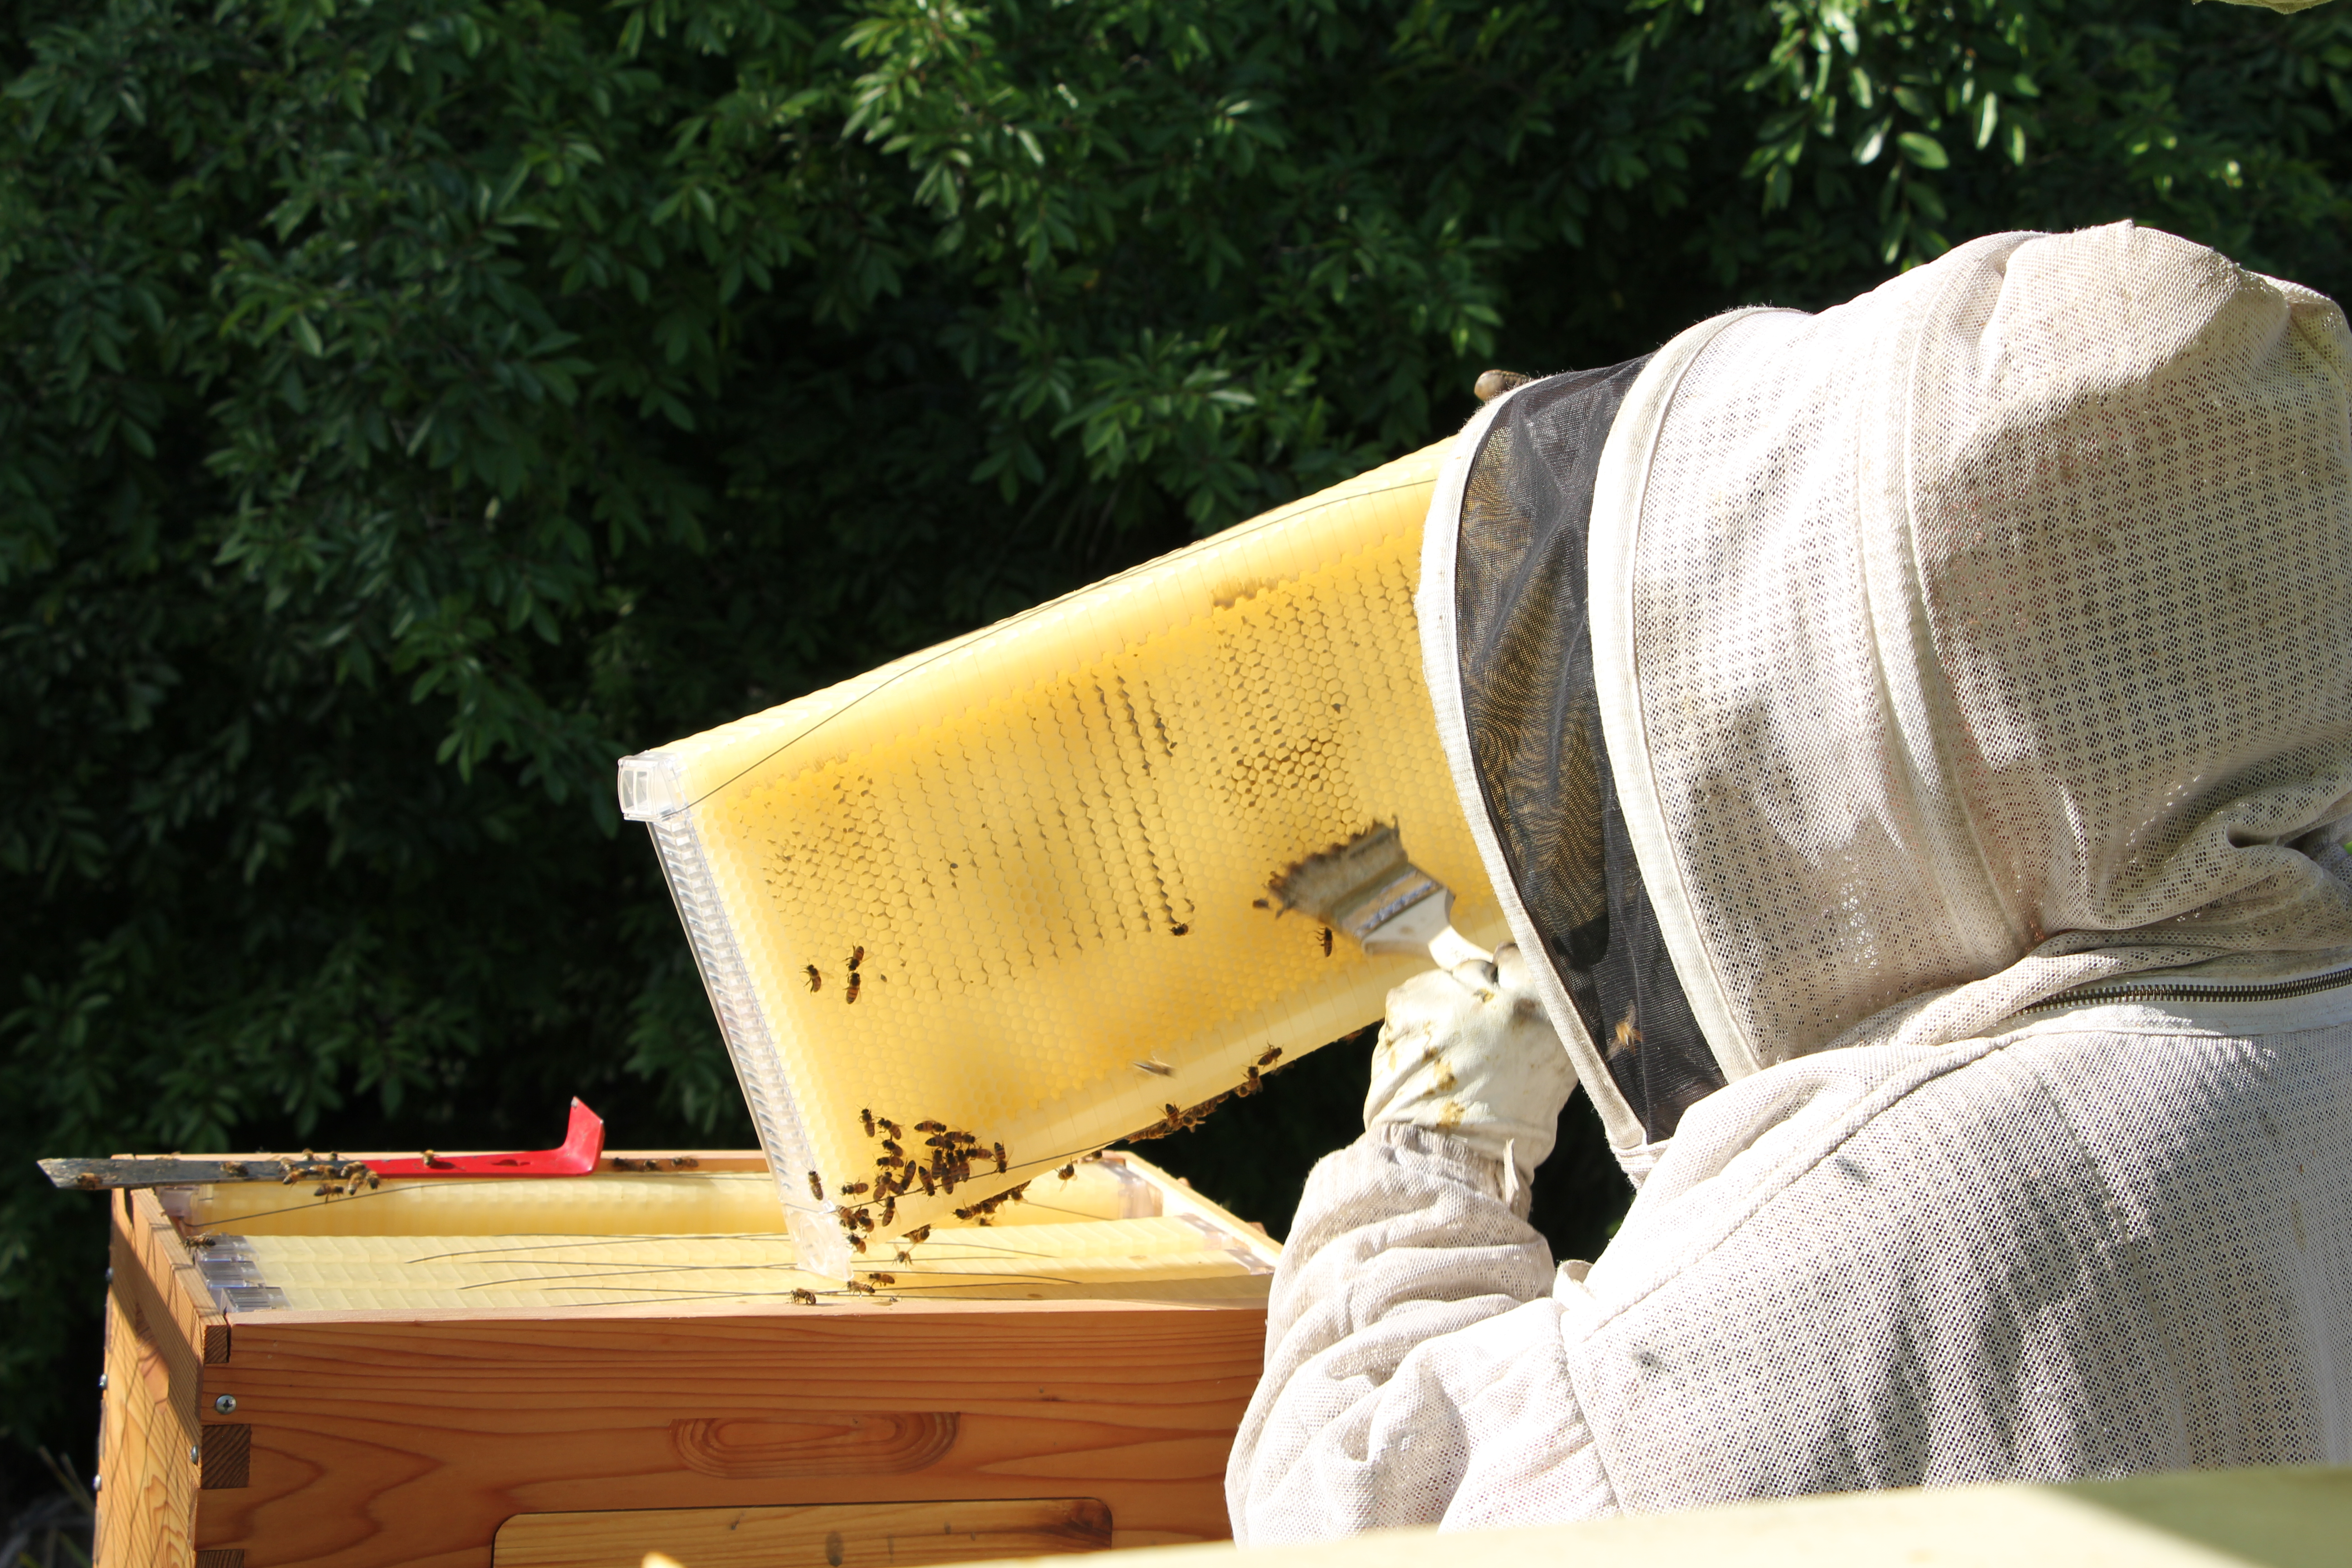 HOW TO GET BEES TO USE YOUR FLOW HIVE